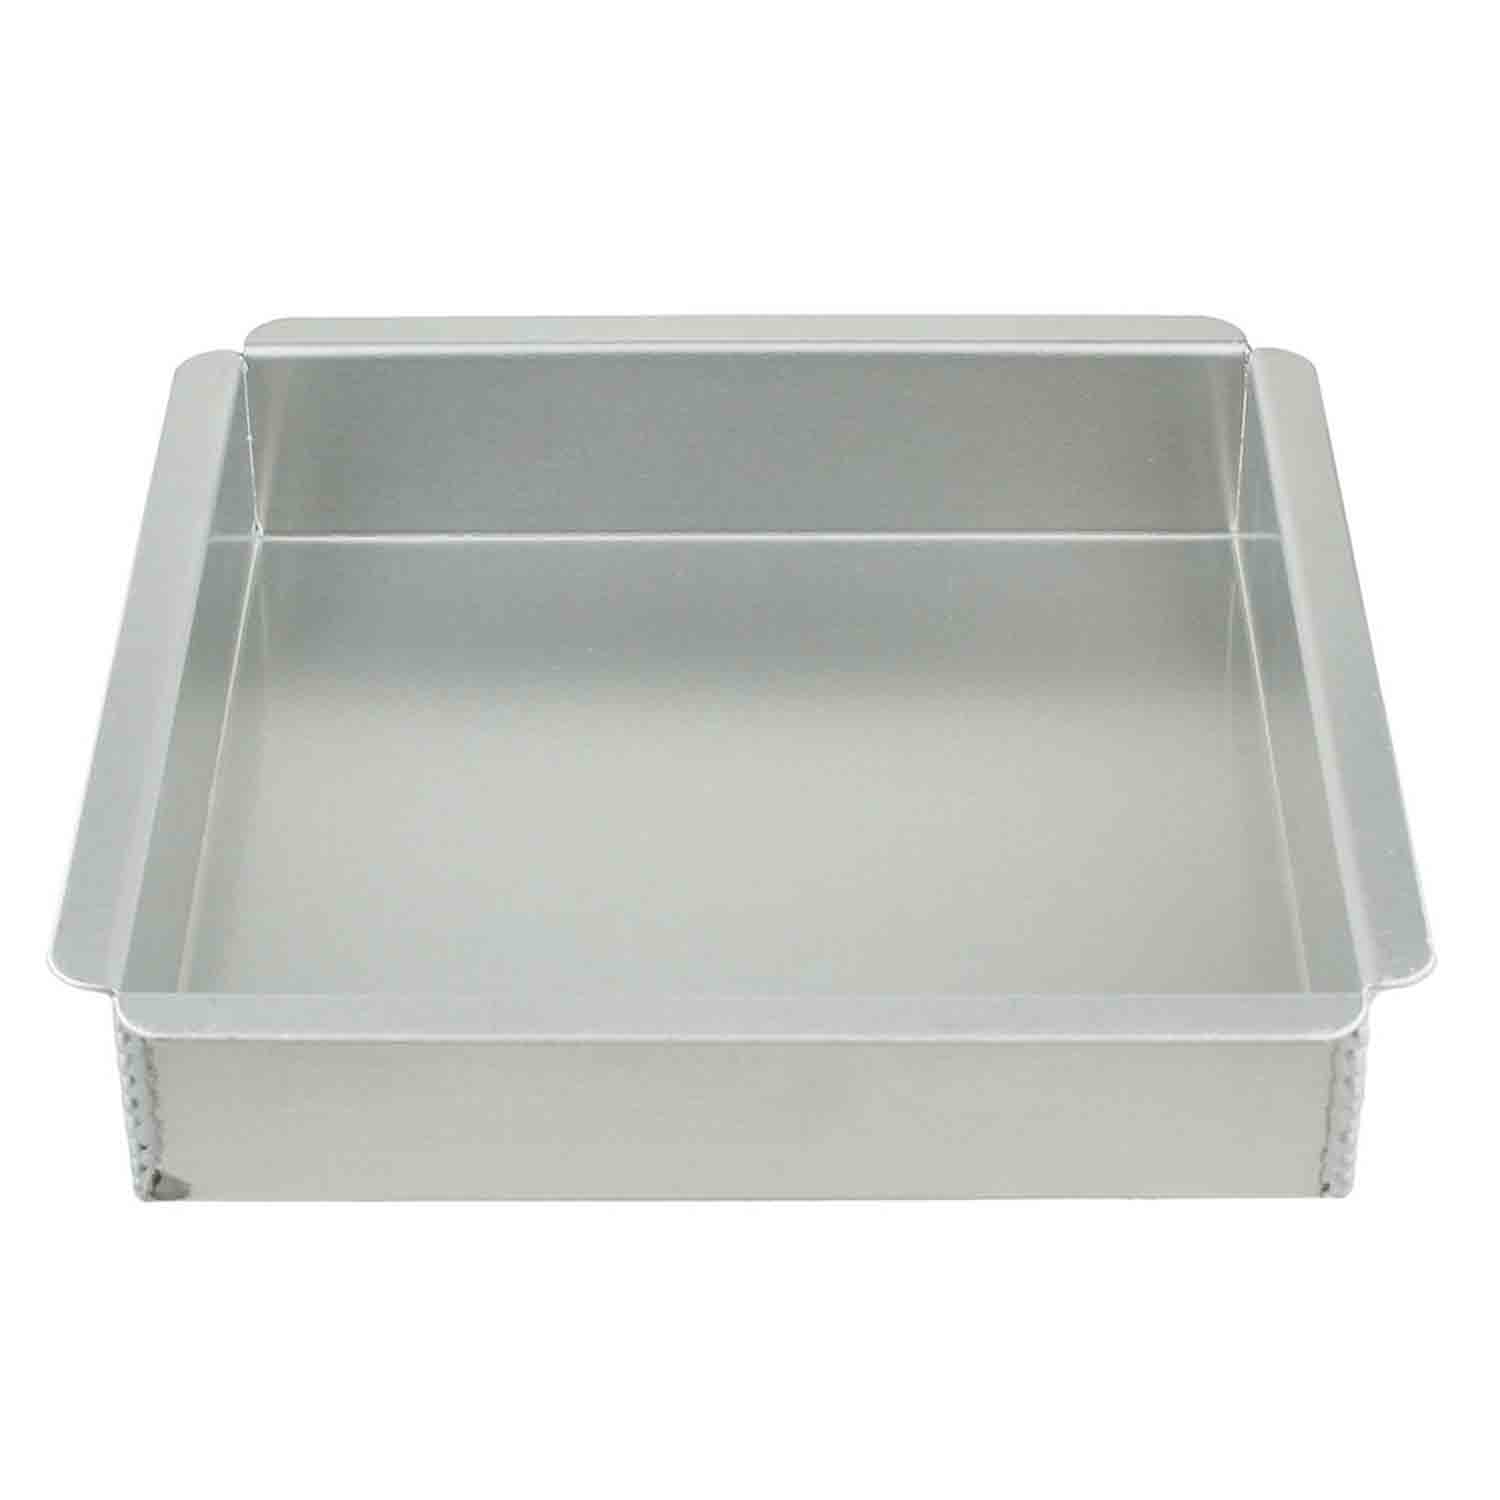 "8 x 2"" Magic Line Square Cake Pan"